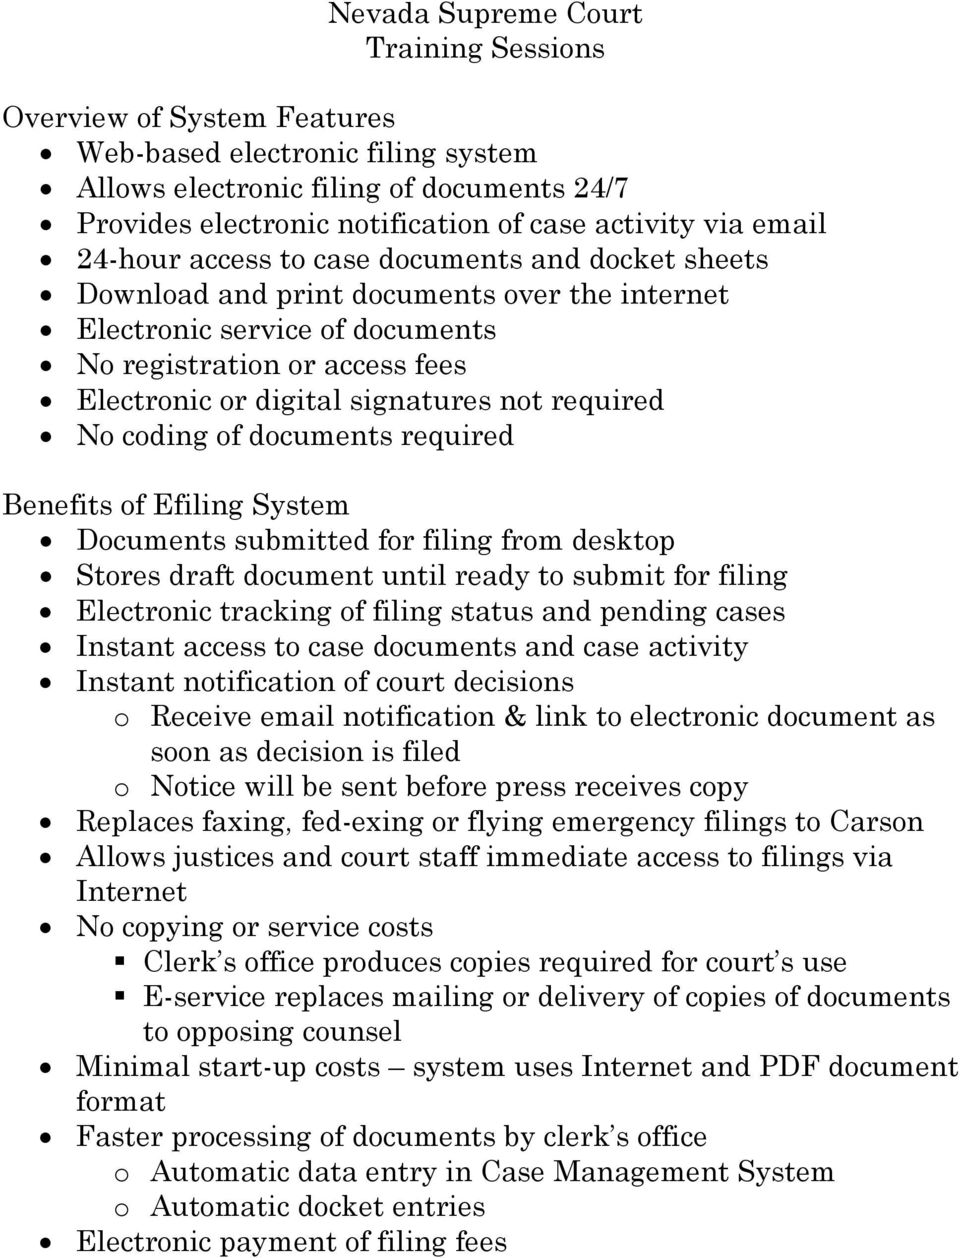 not required No coding of documents required Benefits of Efiling System Documents submitted for filing from desktop Stores draft document until ready to submit for filing Electronic tracking of